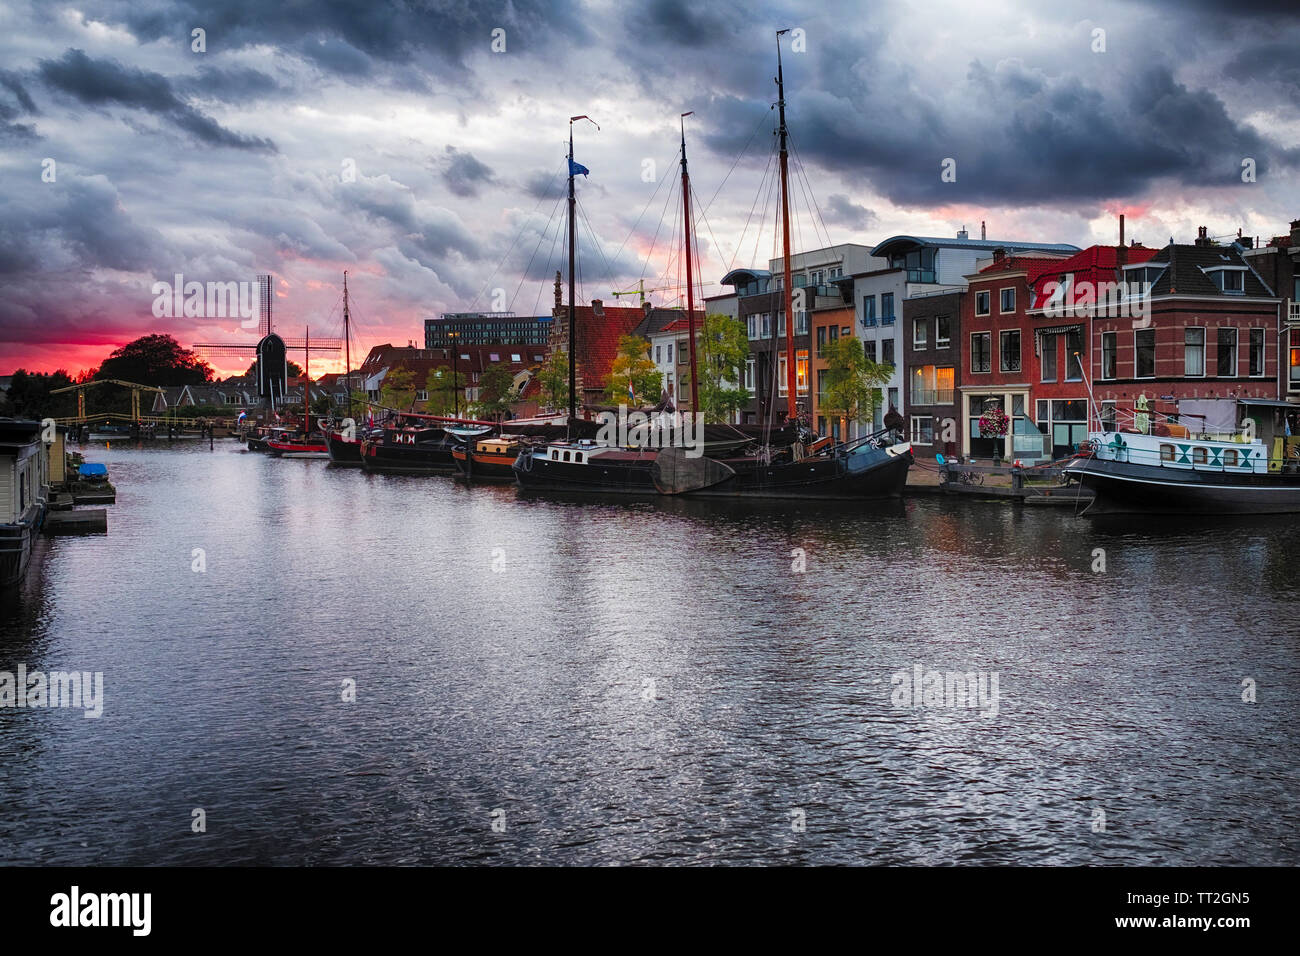 Canal woth Old Ships a Windmill and a Drawbridge at Sunset, Leiden, Netherlands Stock Photo